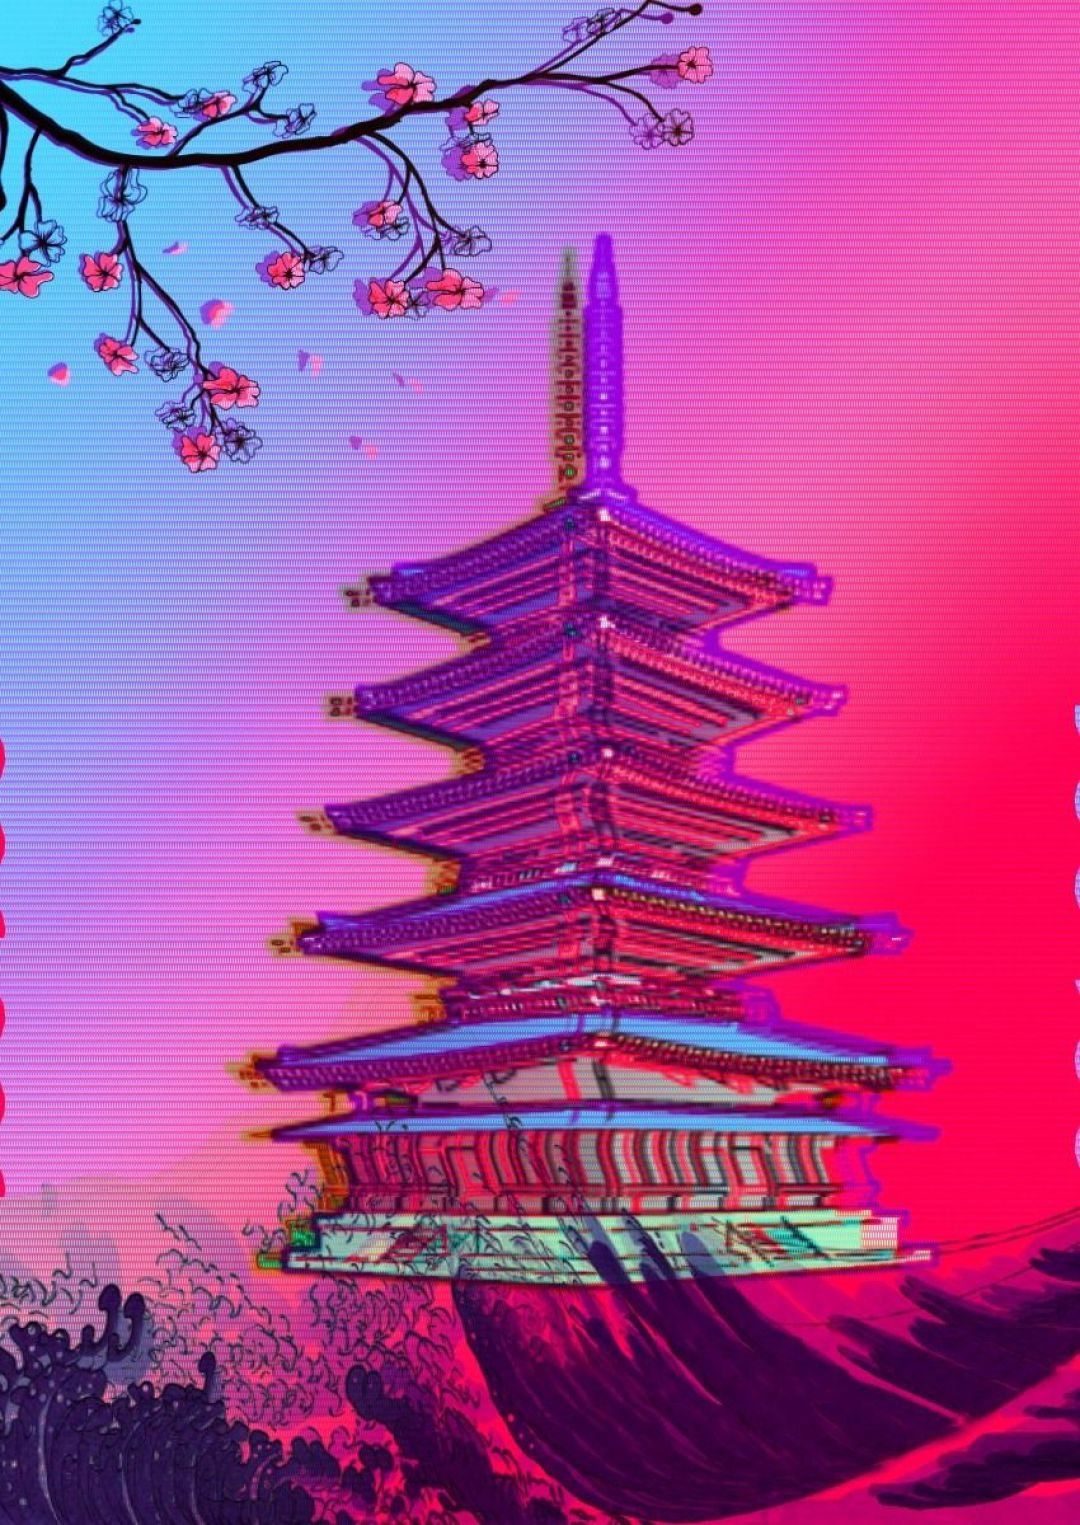 Japanese Aesthetic Hd Wallpapers 1080p 4k 36501 1080x1525 Wallpaper Teahub Io